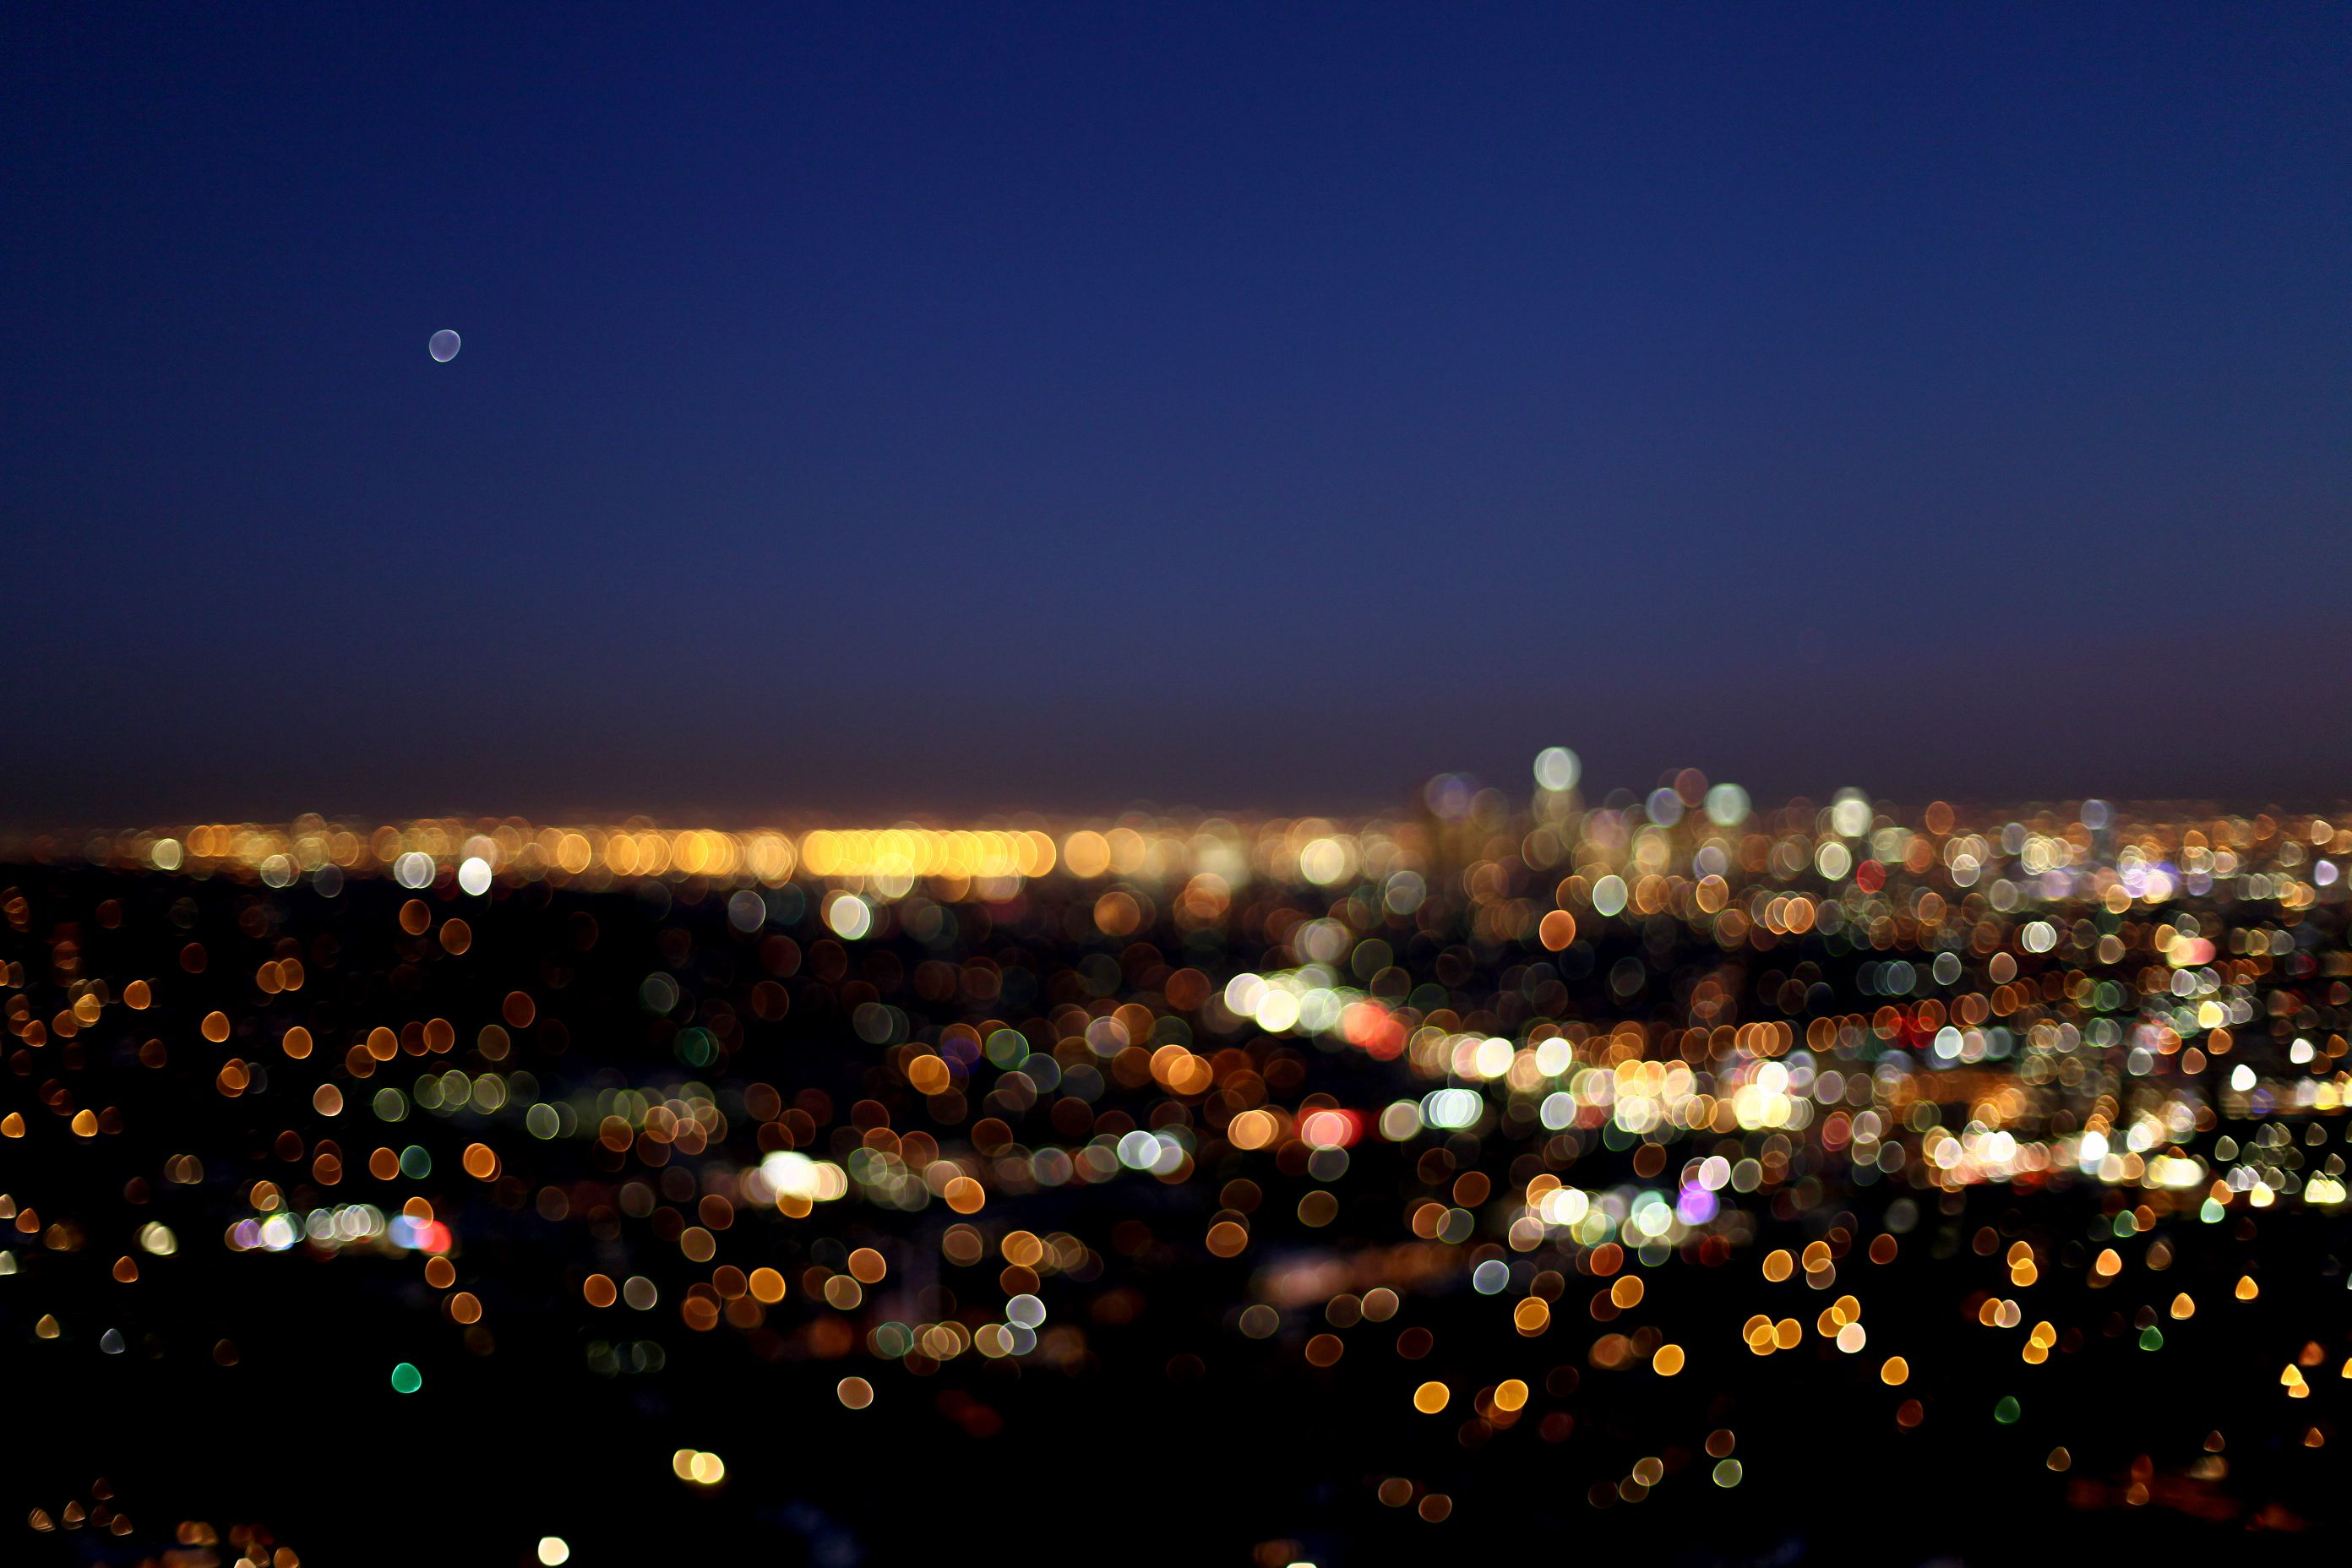 Photography Tumblr City Lights Background 1 HD Wallpapers ... for Night Light Tumblr  284dqh